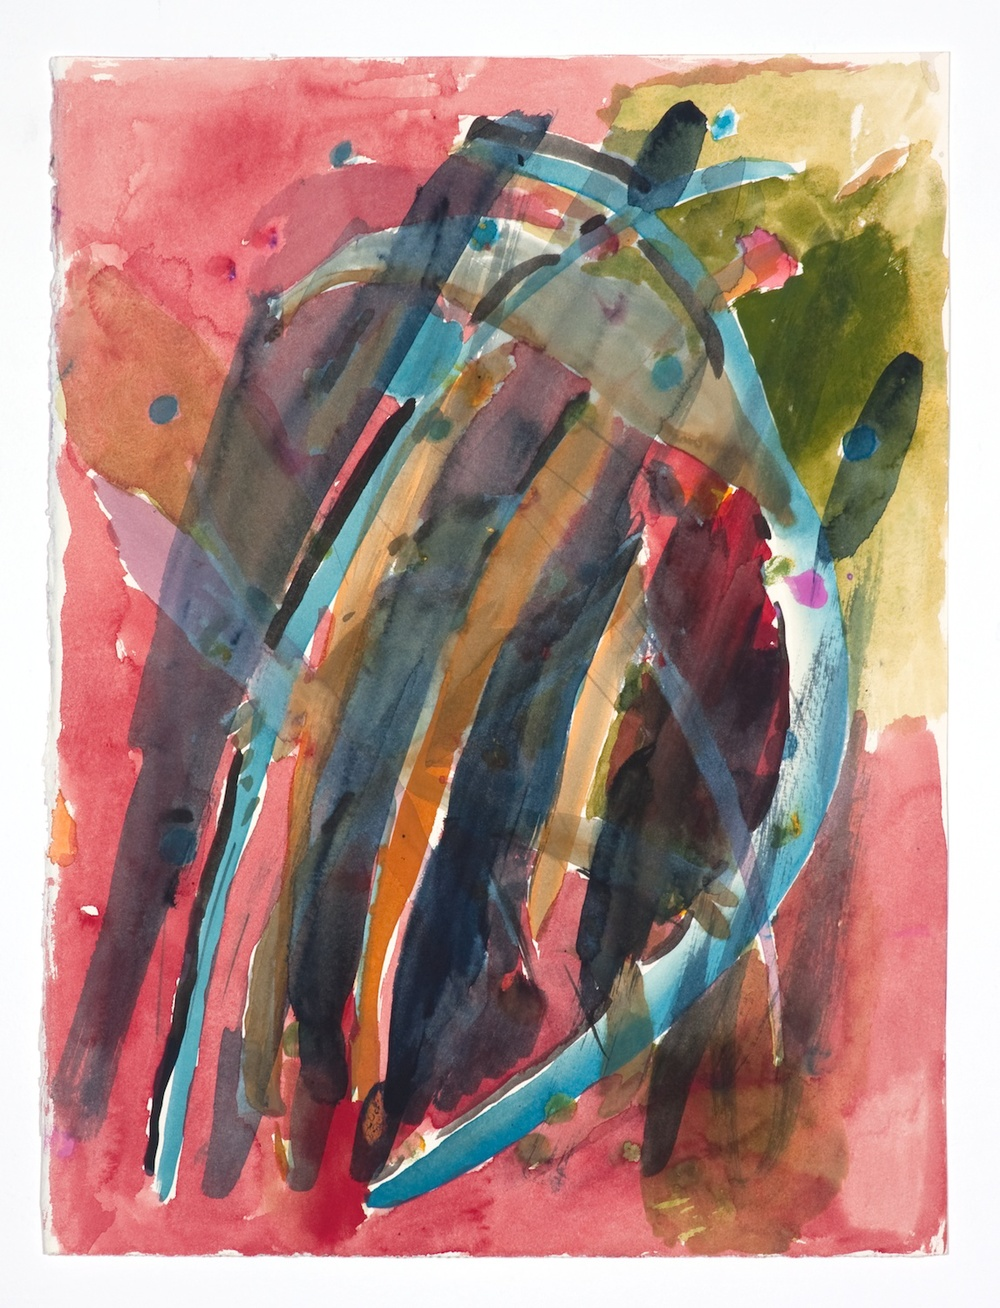 Jon Pestoni  Untitled  2009 Gouache on paper 15h x 11 ¾w in JP076